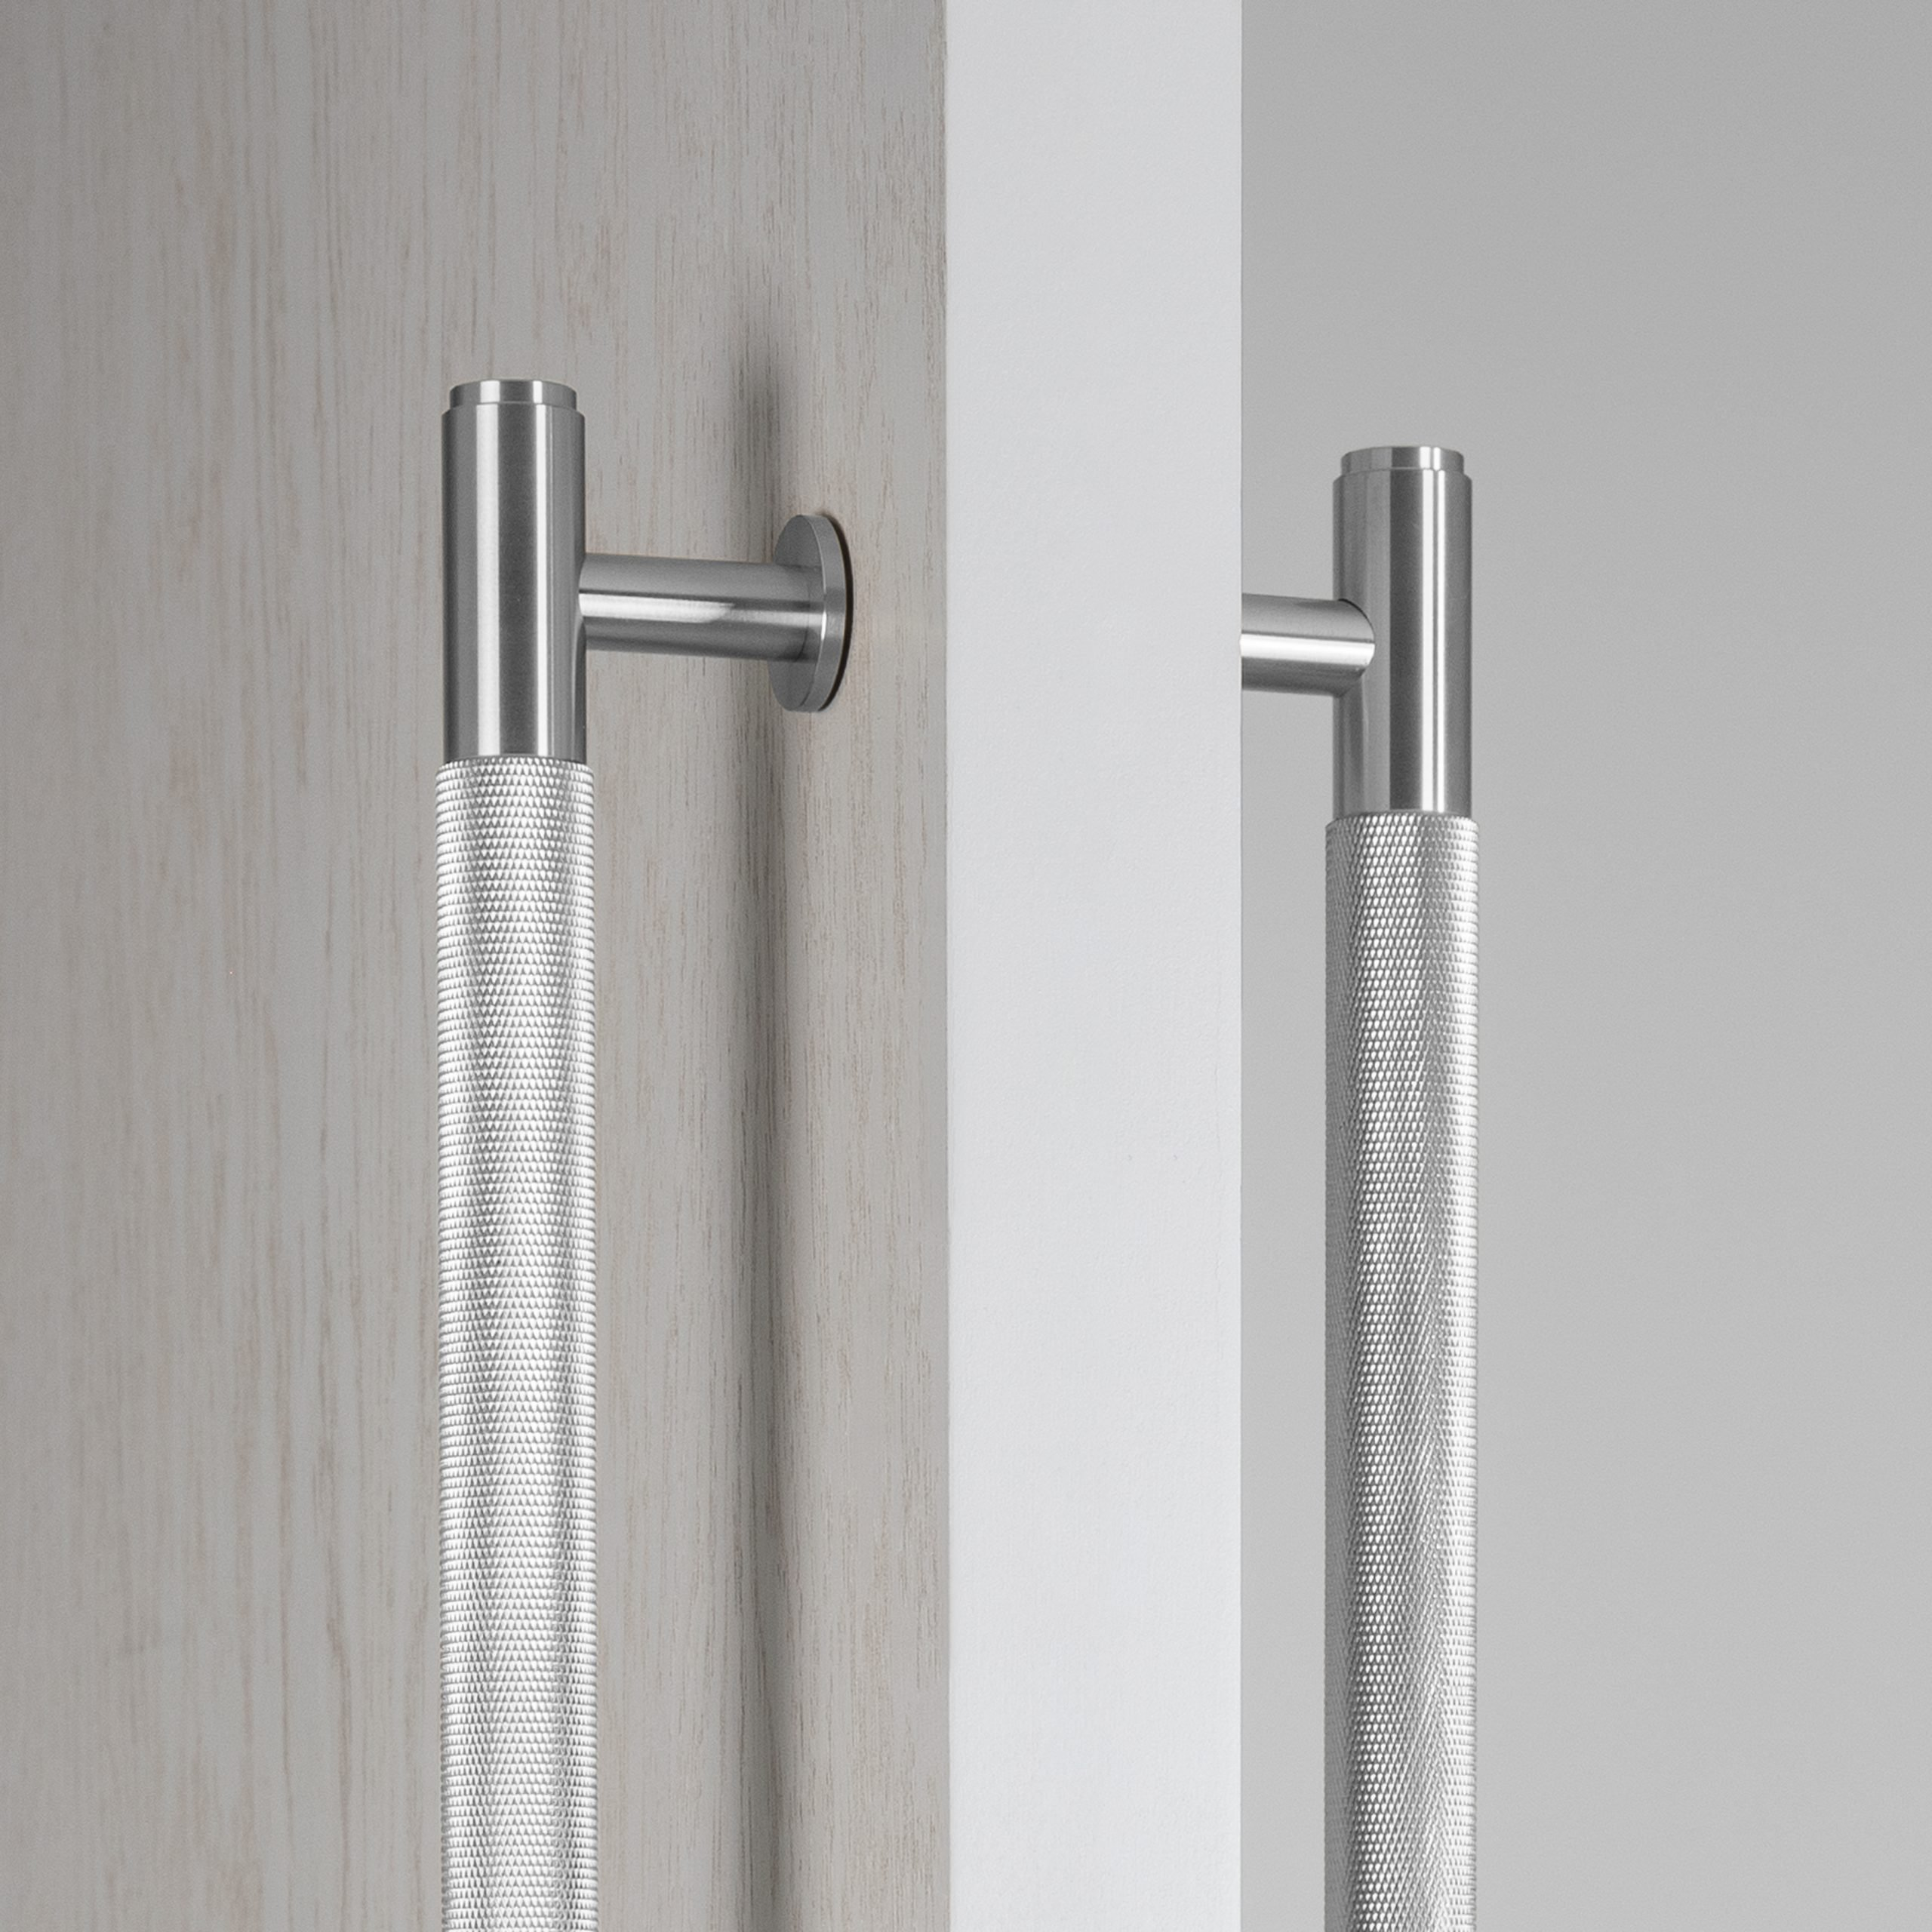 2.BP_Double_Sided_Pull_Bar_Steel